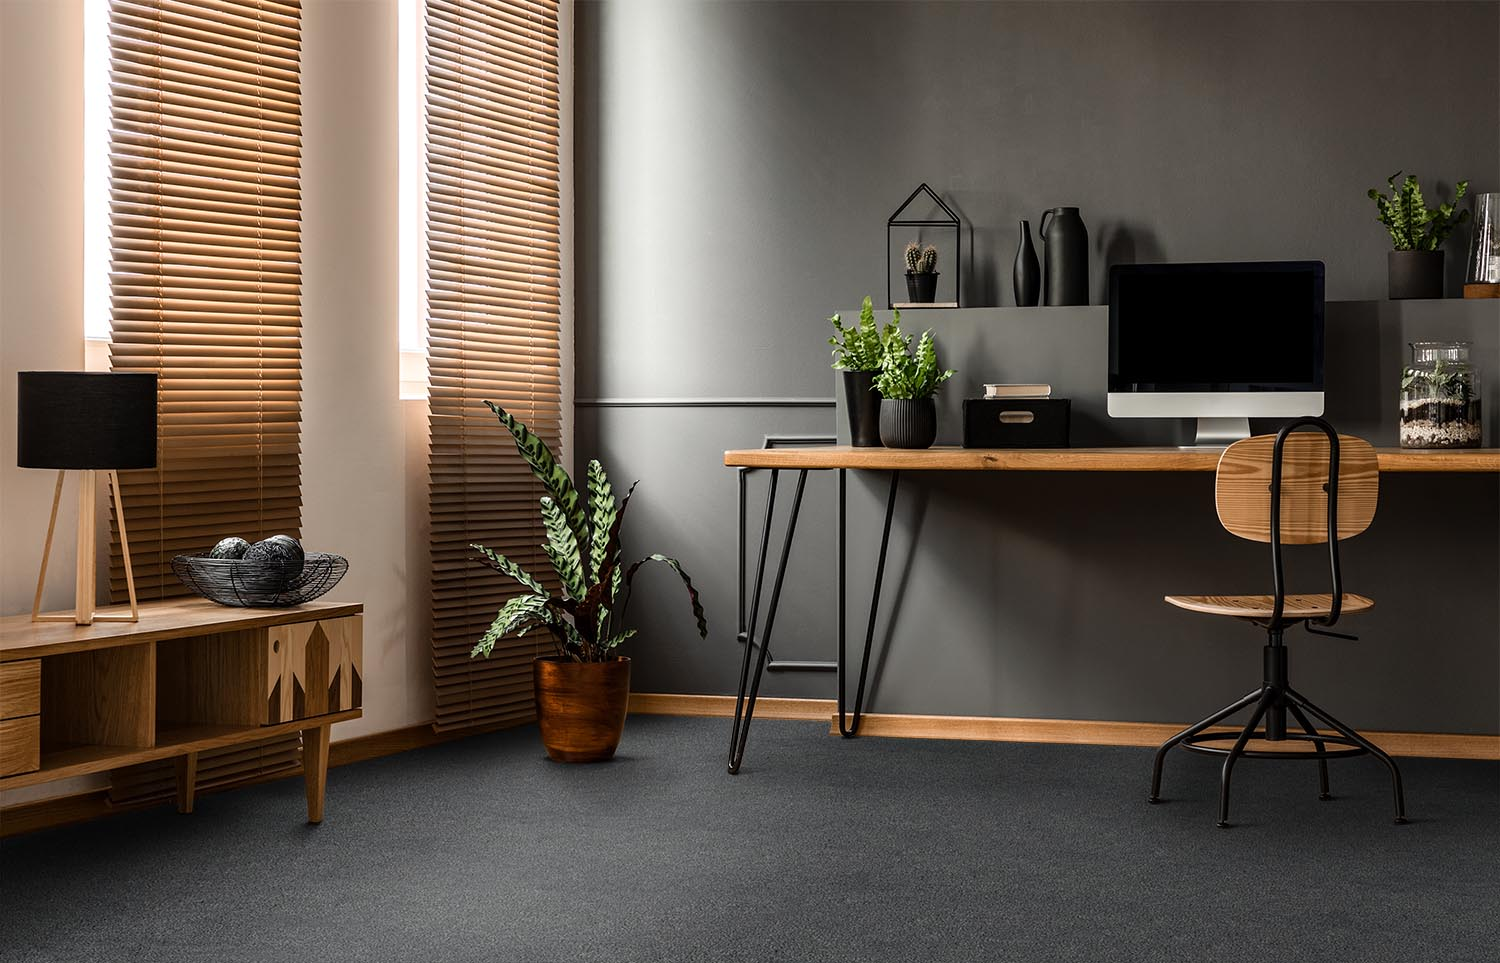 Mantra - M301 - Inky home office